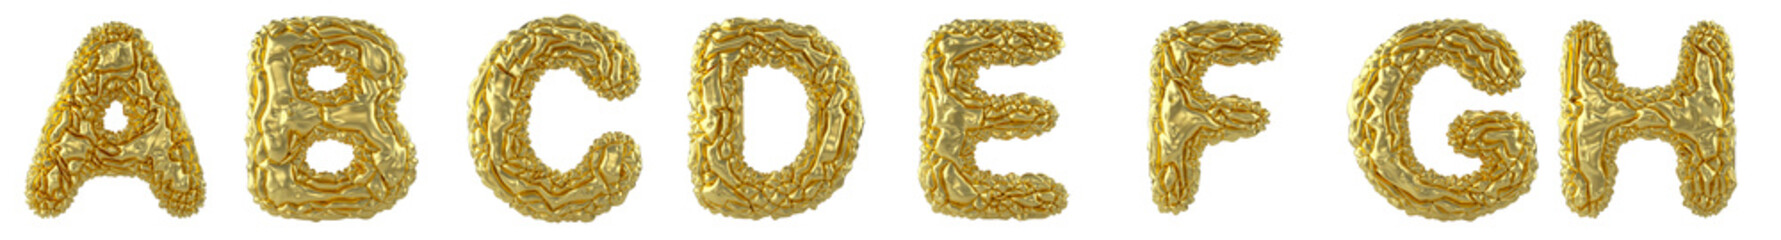 Obraz Realistic 3D letters set A, B, C, D, E, F, G, H made of crumpled foil. Collection symbols of crumpled gold foil isolated on white background. - fototapety do salonu